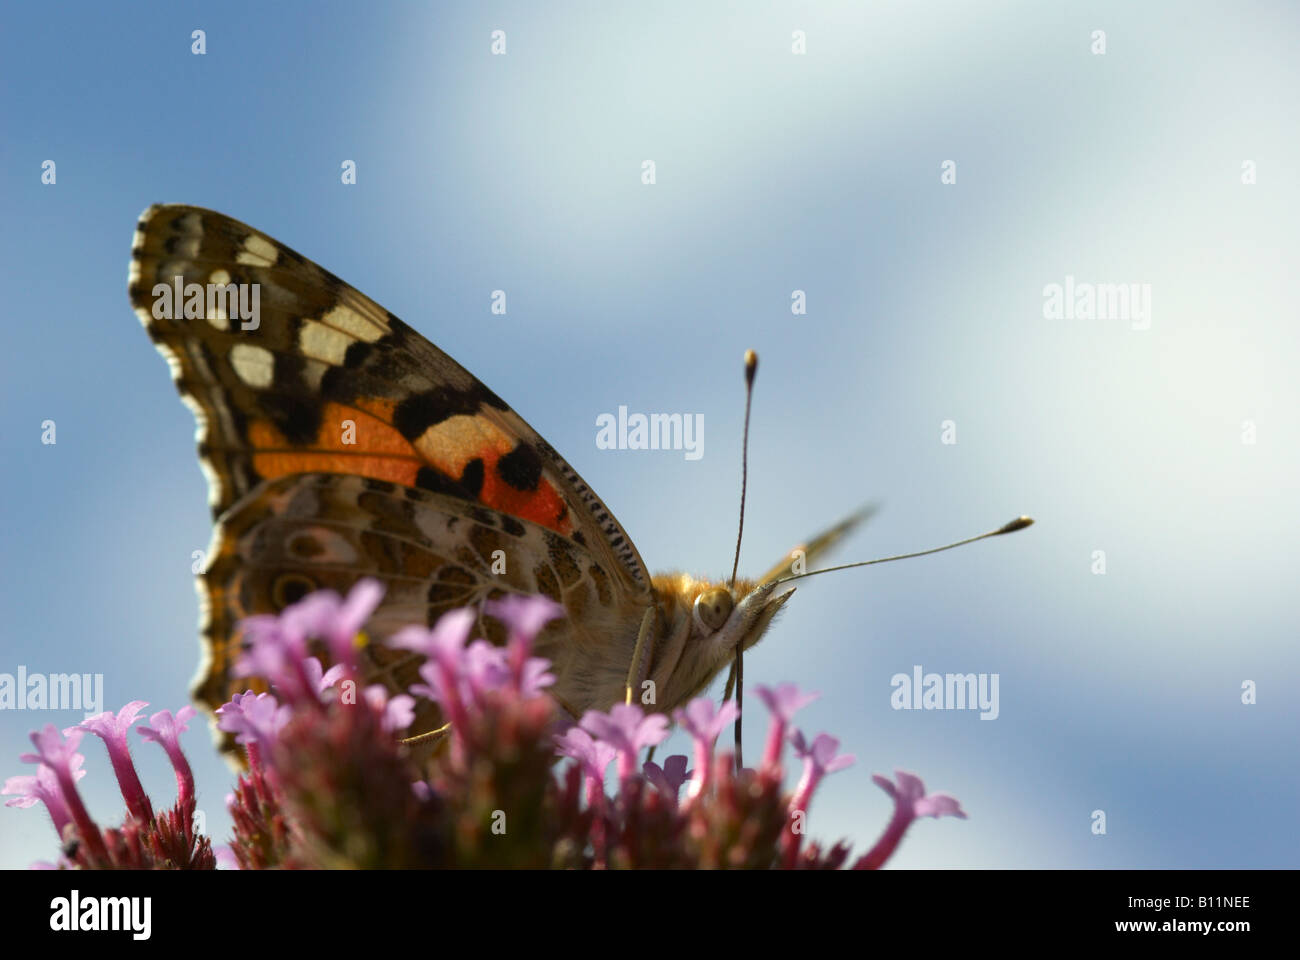 Painted Lady Butterfly (Vanessa cardui) nectaring on Verbena bonariensis flower - Stock Image